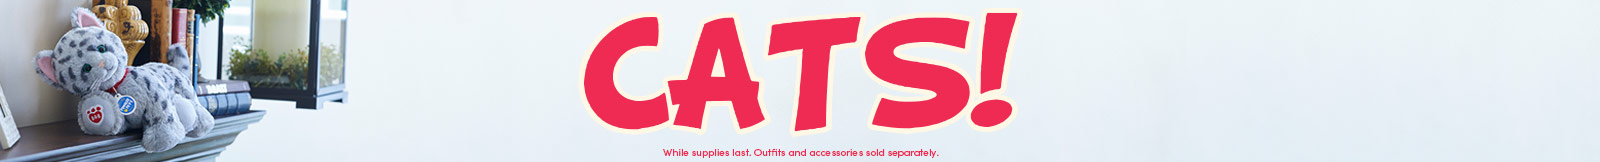 Cats Category Banner